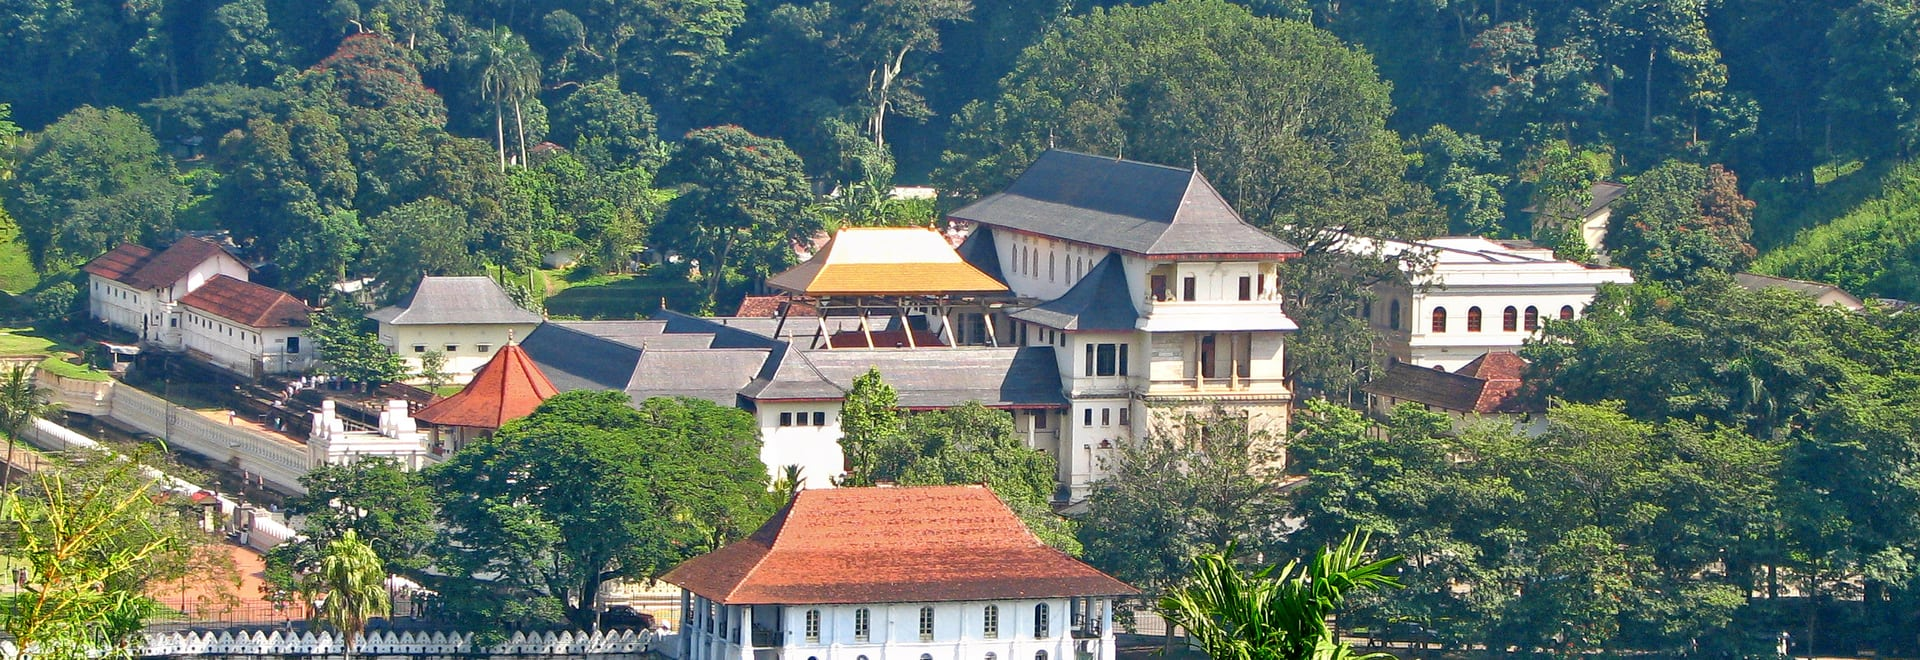 1491646844_sri_lanka_-_029_-_kandy_temple_of_the_tooth.jpg